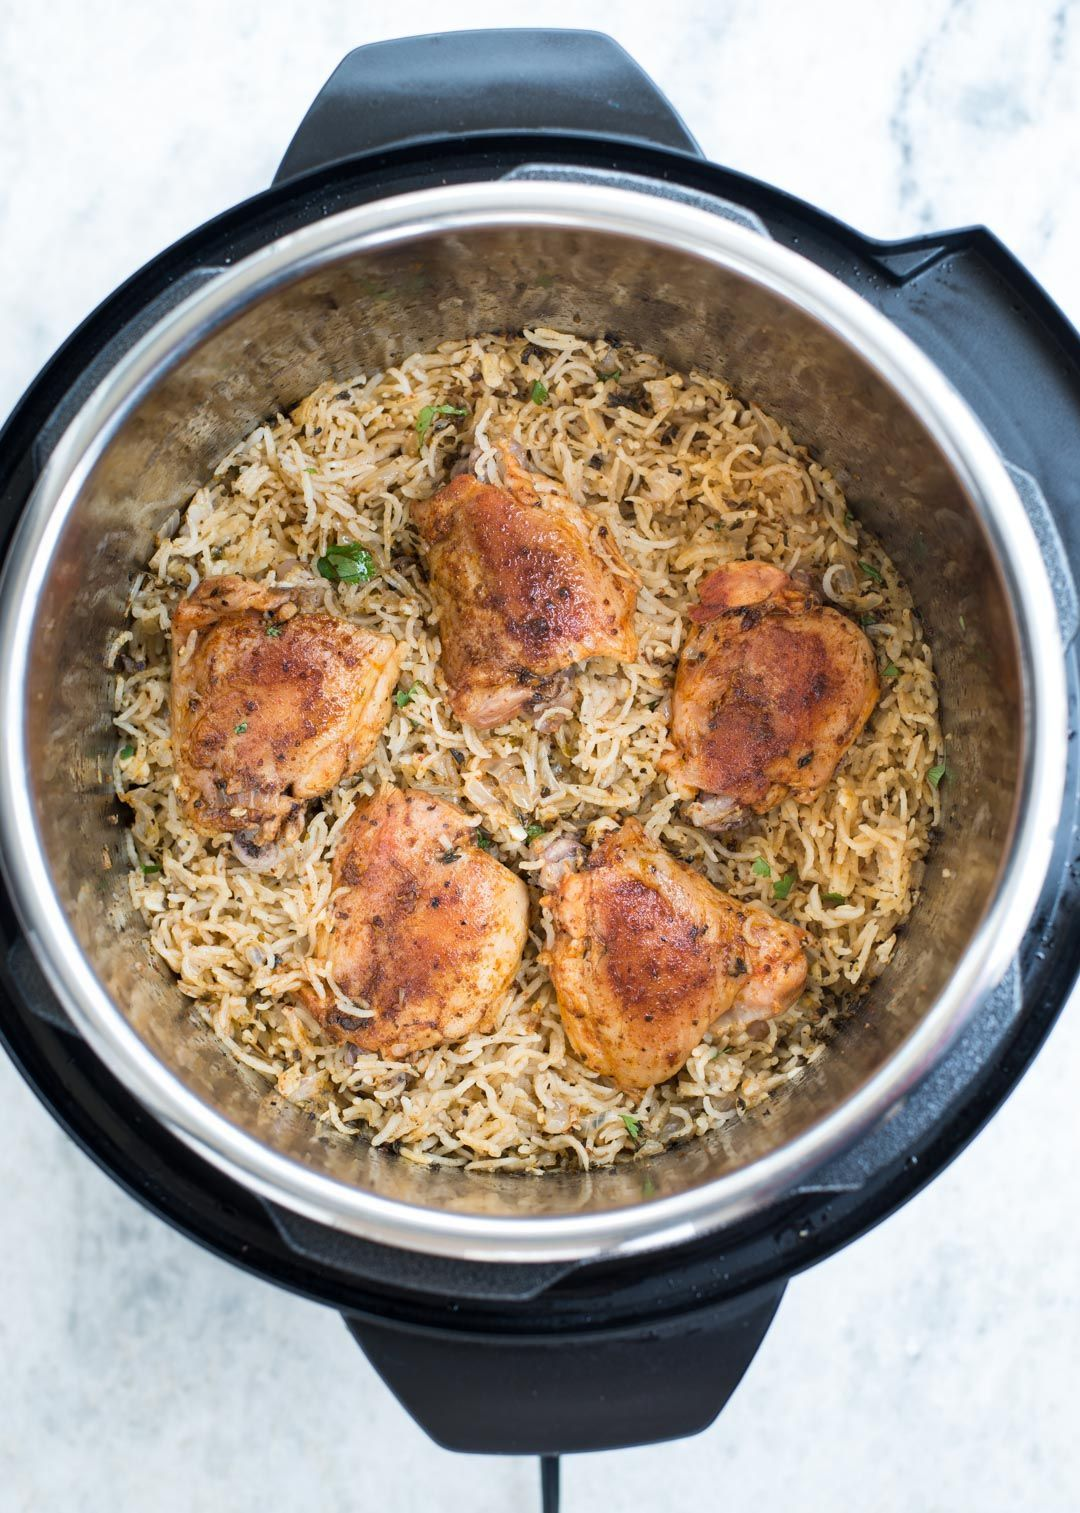 Garlic Herb Chicken and Rice made in the Instant Pot have fluffy buttery rice and Juicy Chicken thighs. This Instant Pot Garlic Herb Chicken and Rice is a wholesome dinner that entire family will love. Herb Chicken and Rice made in the Instant Pot have fluffy buttery rice and Juicy Chicken thighs. This Instant Pot Garlic Herb Chicken and Rice is a wholesome dinner that entire family will love.